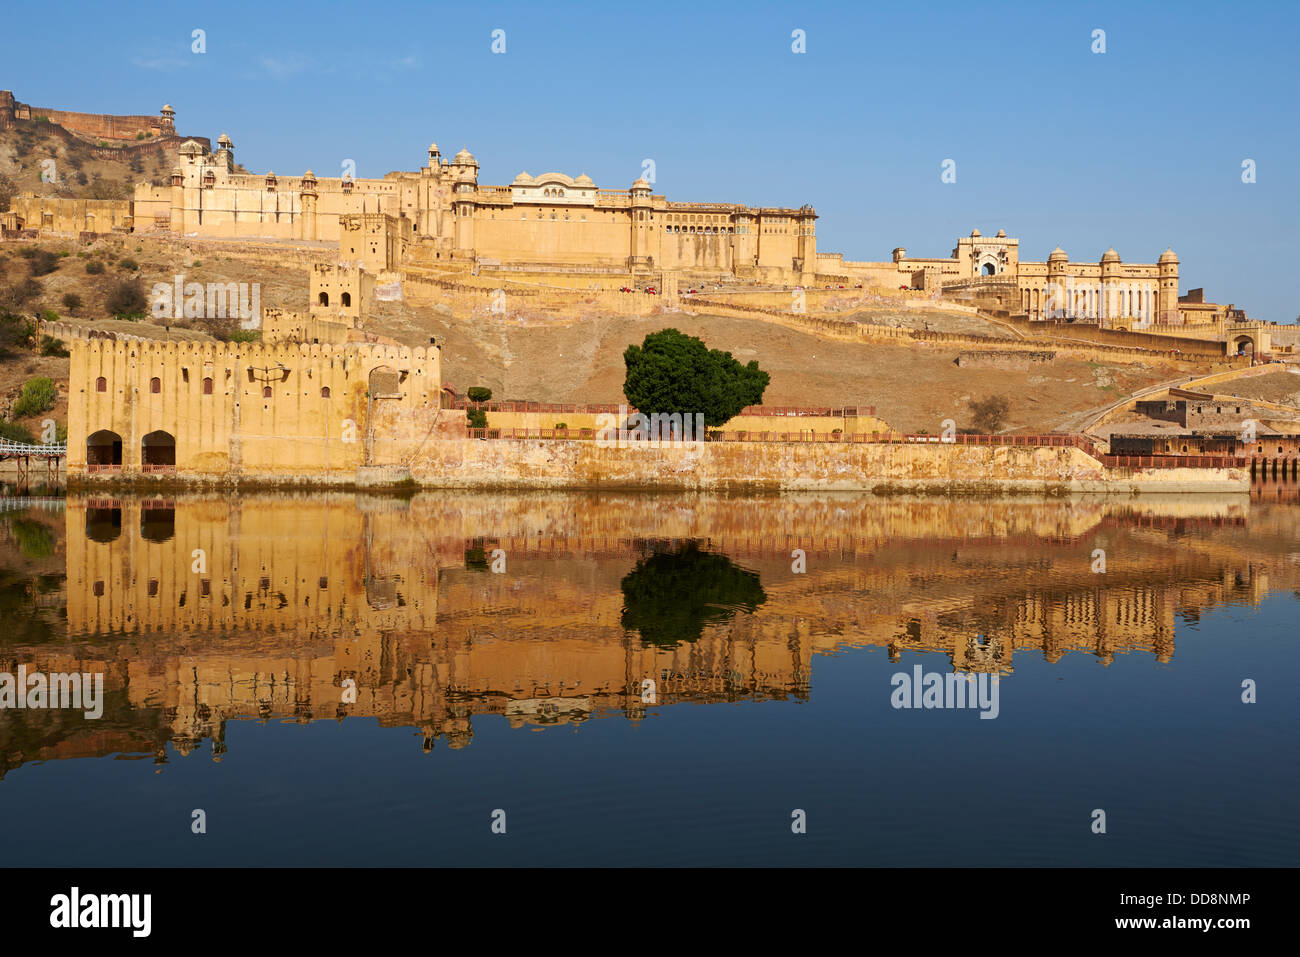 India, Rajasthan, Jaipur the pink city, Amber fort - Stock Image